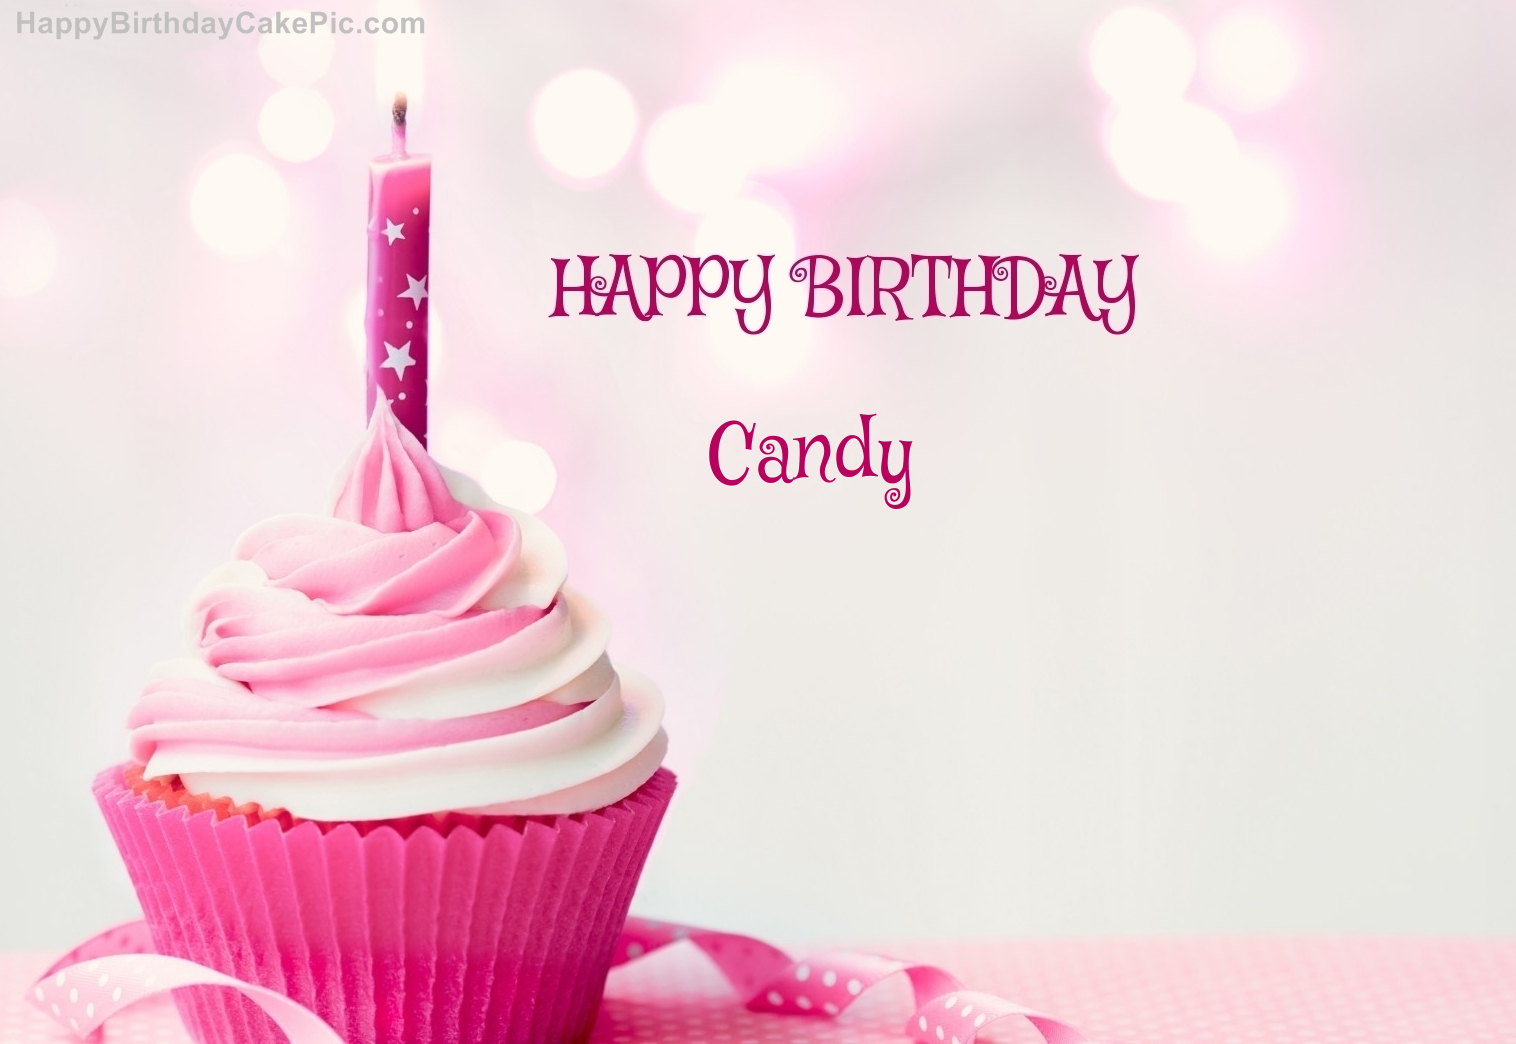 Happy Birthday Cupcake Candle Pink Cake For Candy